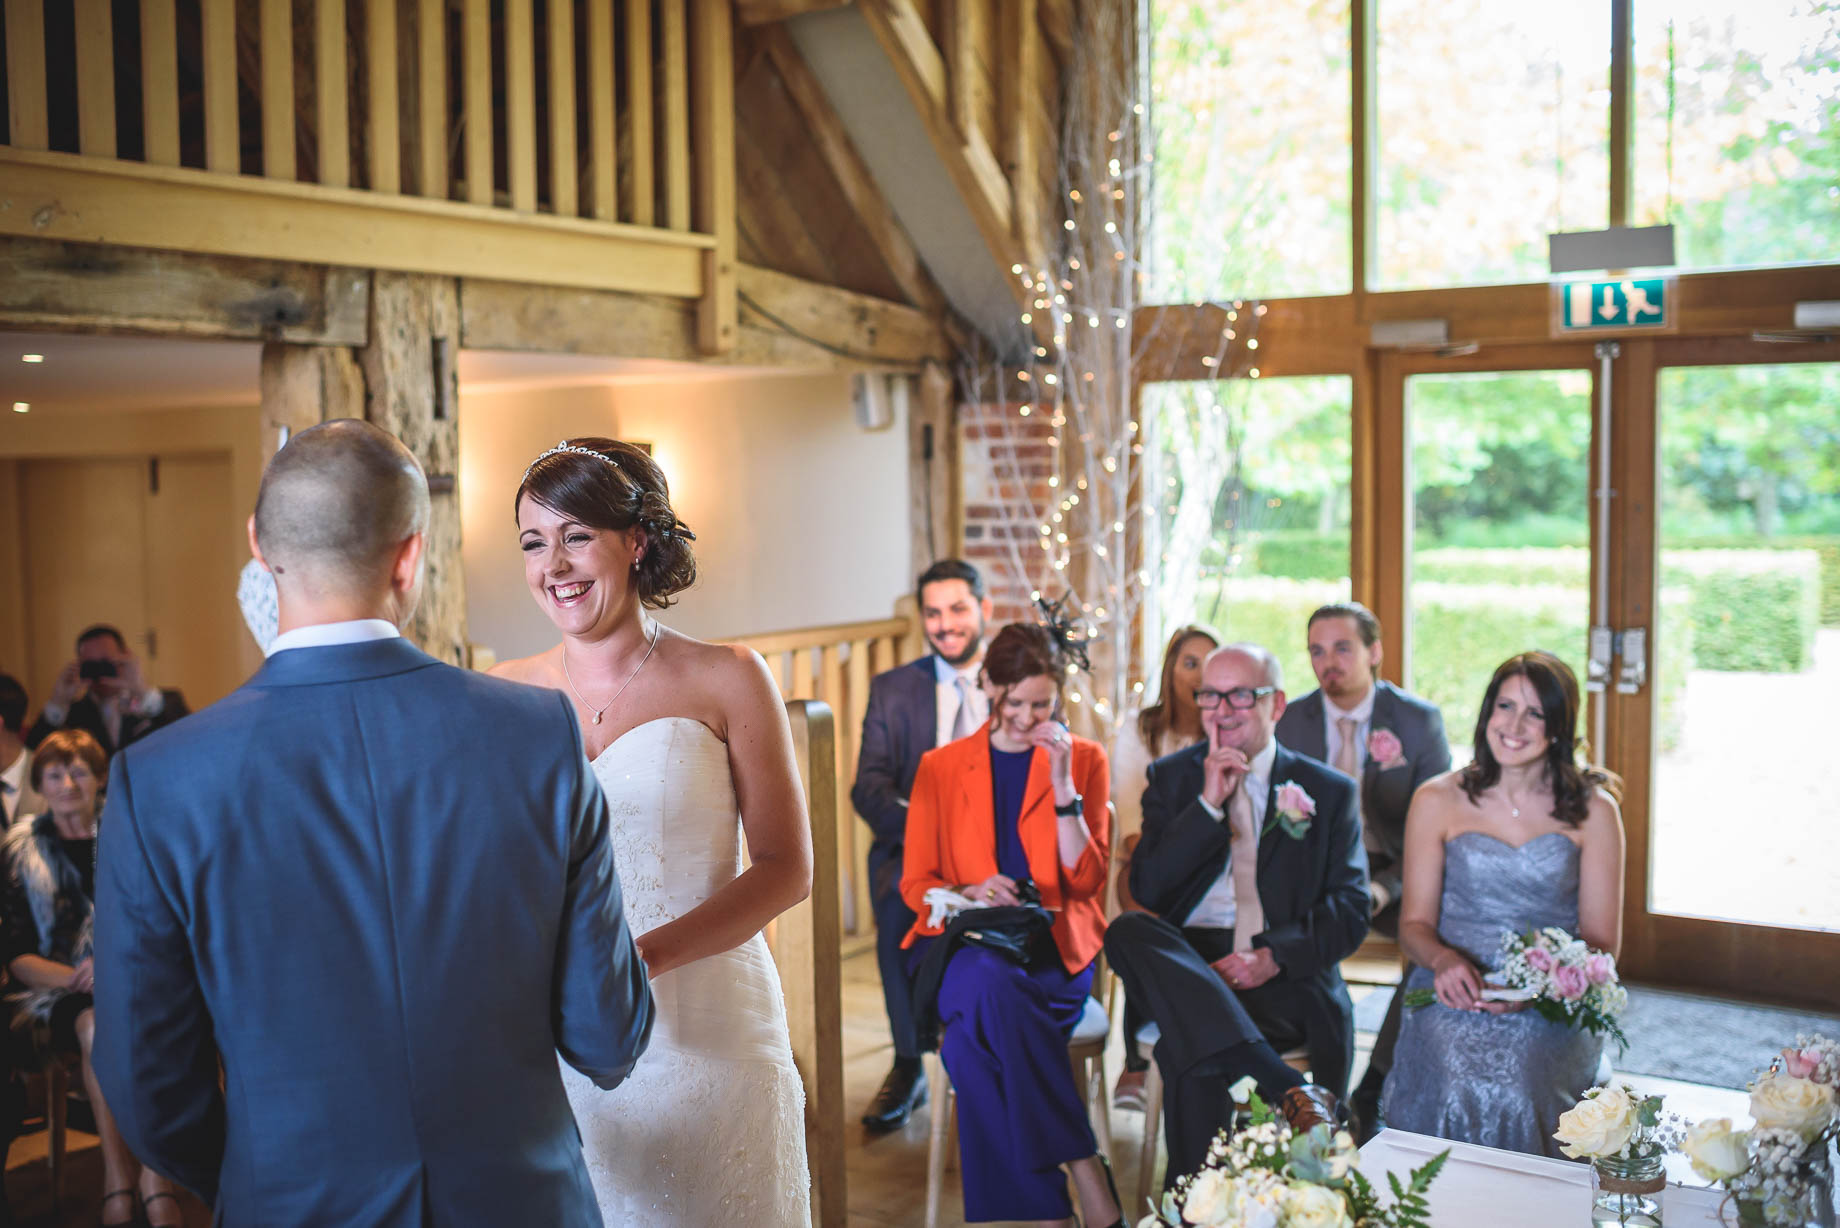 Bury Court Barn wedding photography - Guy Collier Photography - Karen and John (57 of 166)